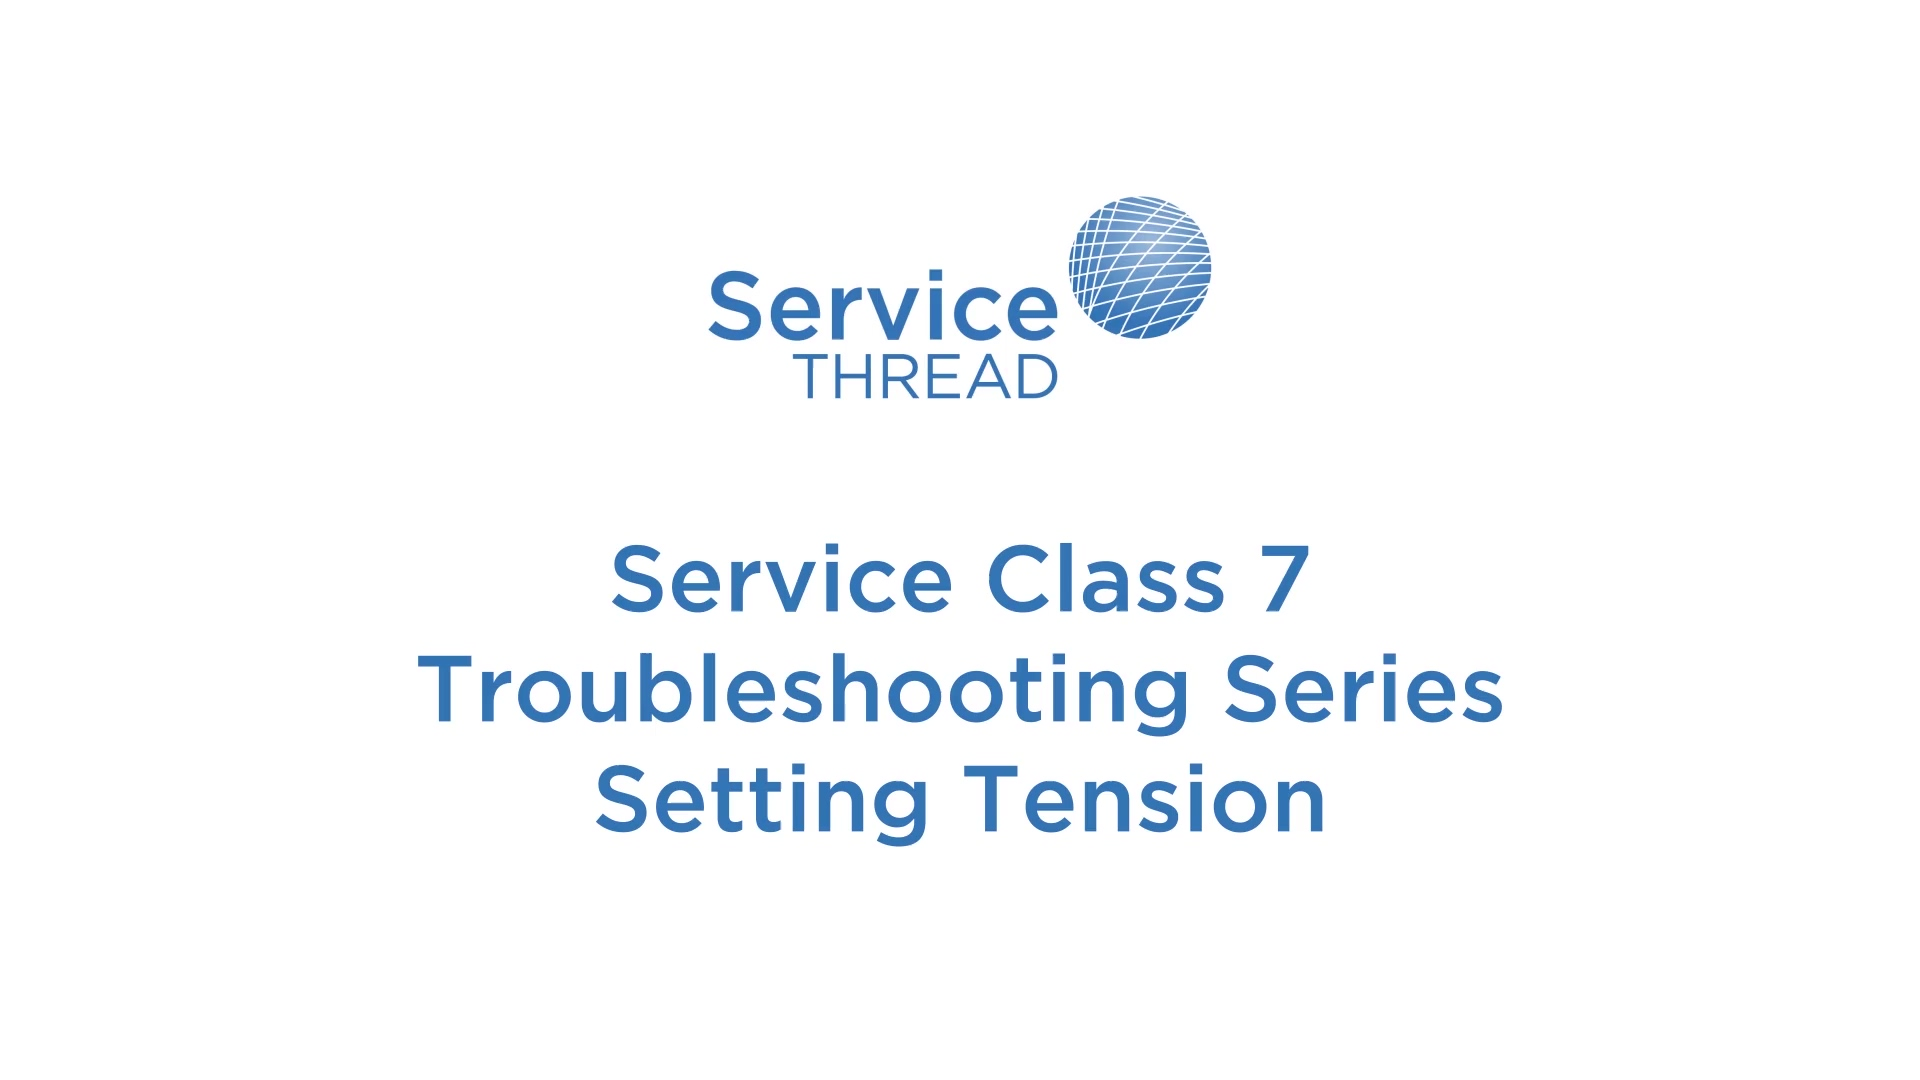 Service Thread-Troubleshooting-Series-Setting-Tension